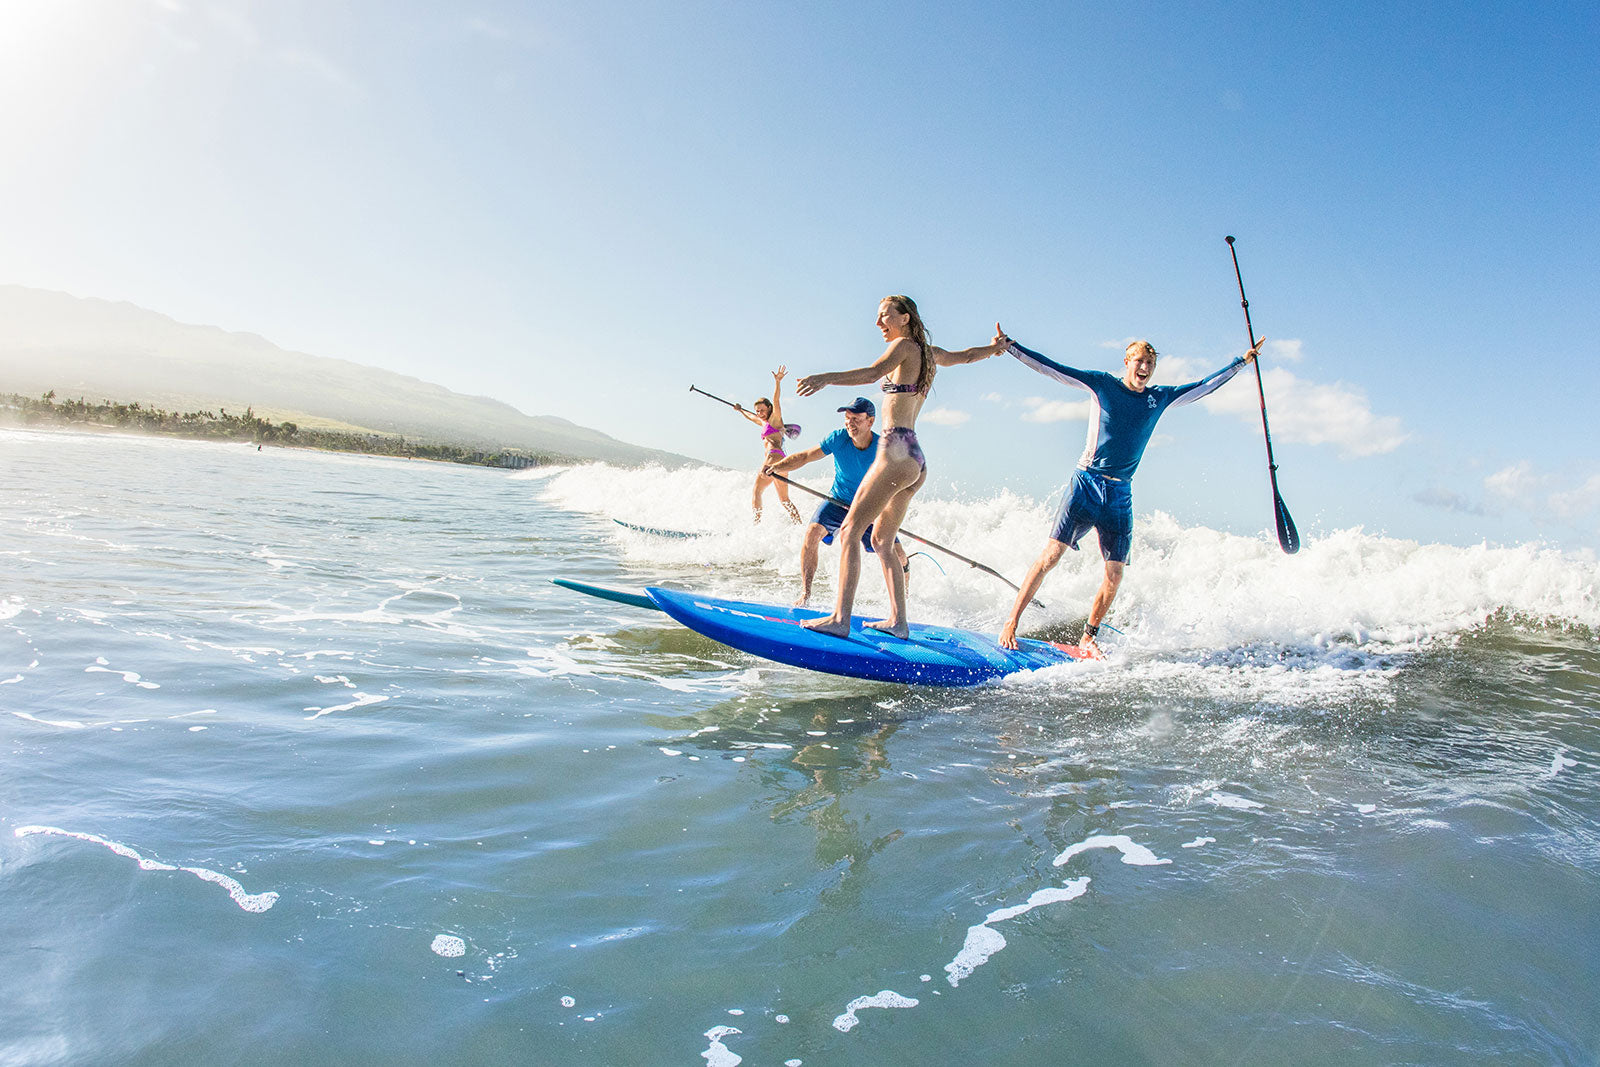 9 Reasons I Love to Stand Up Paddle (SUP) Board